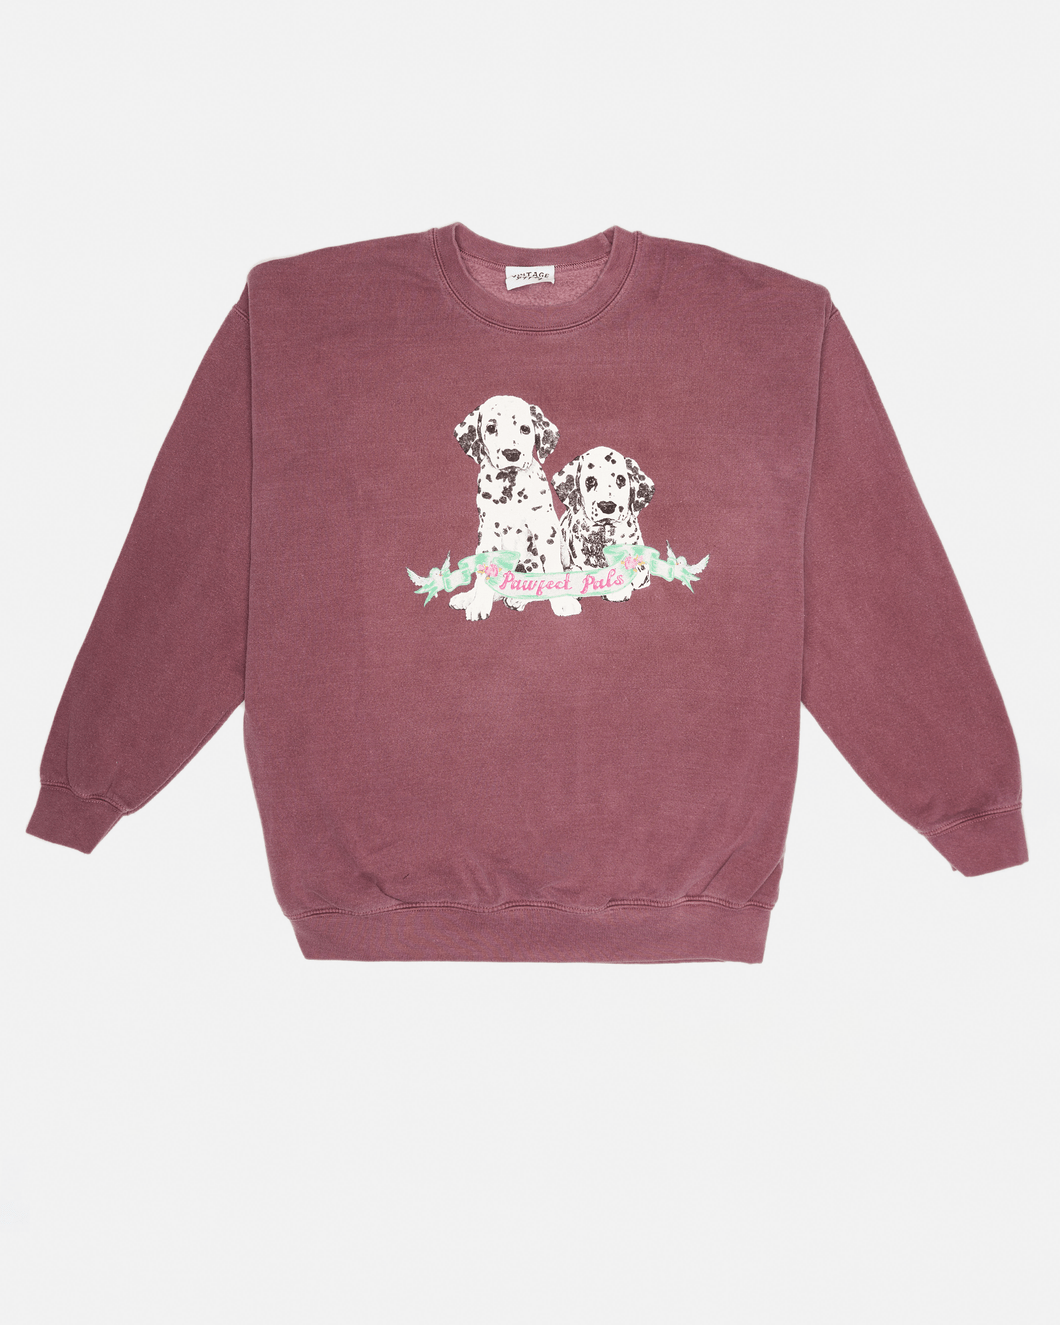 OD Sweat with Pawfect Pals Graphic